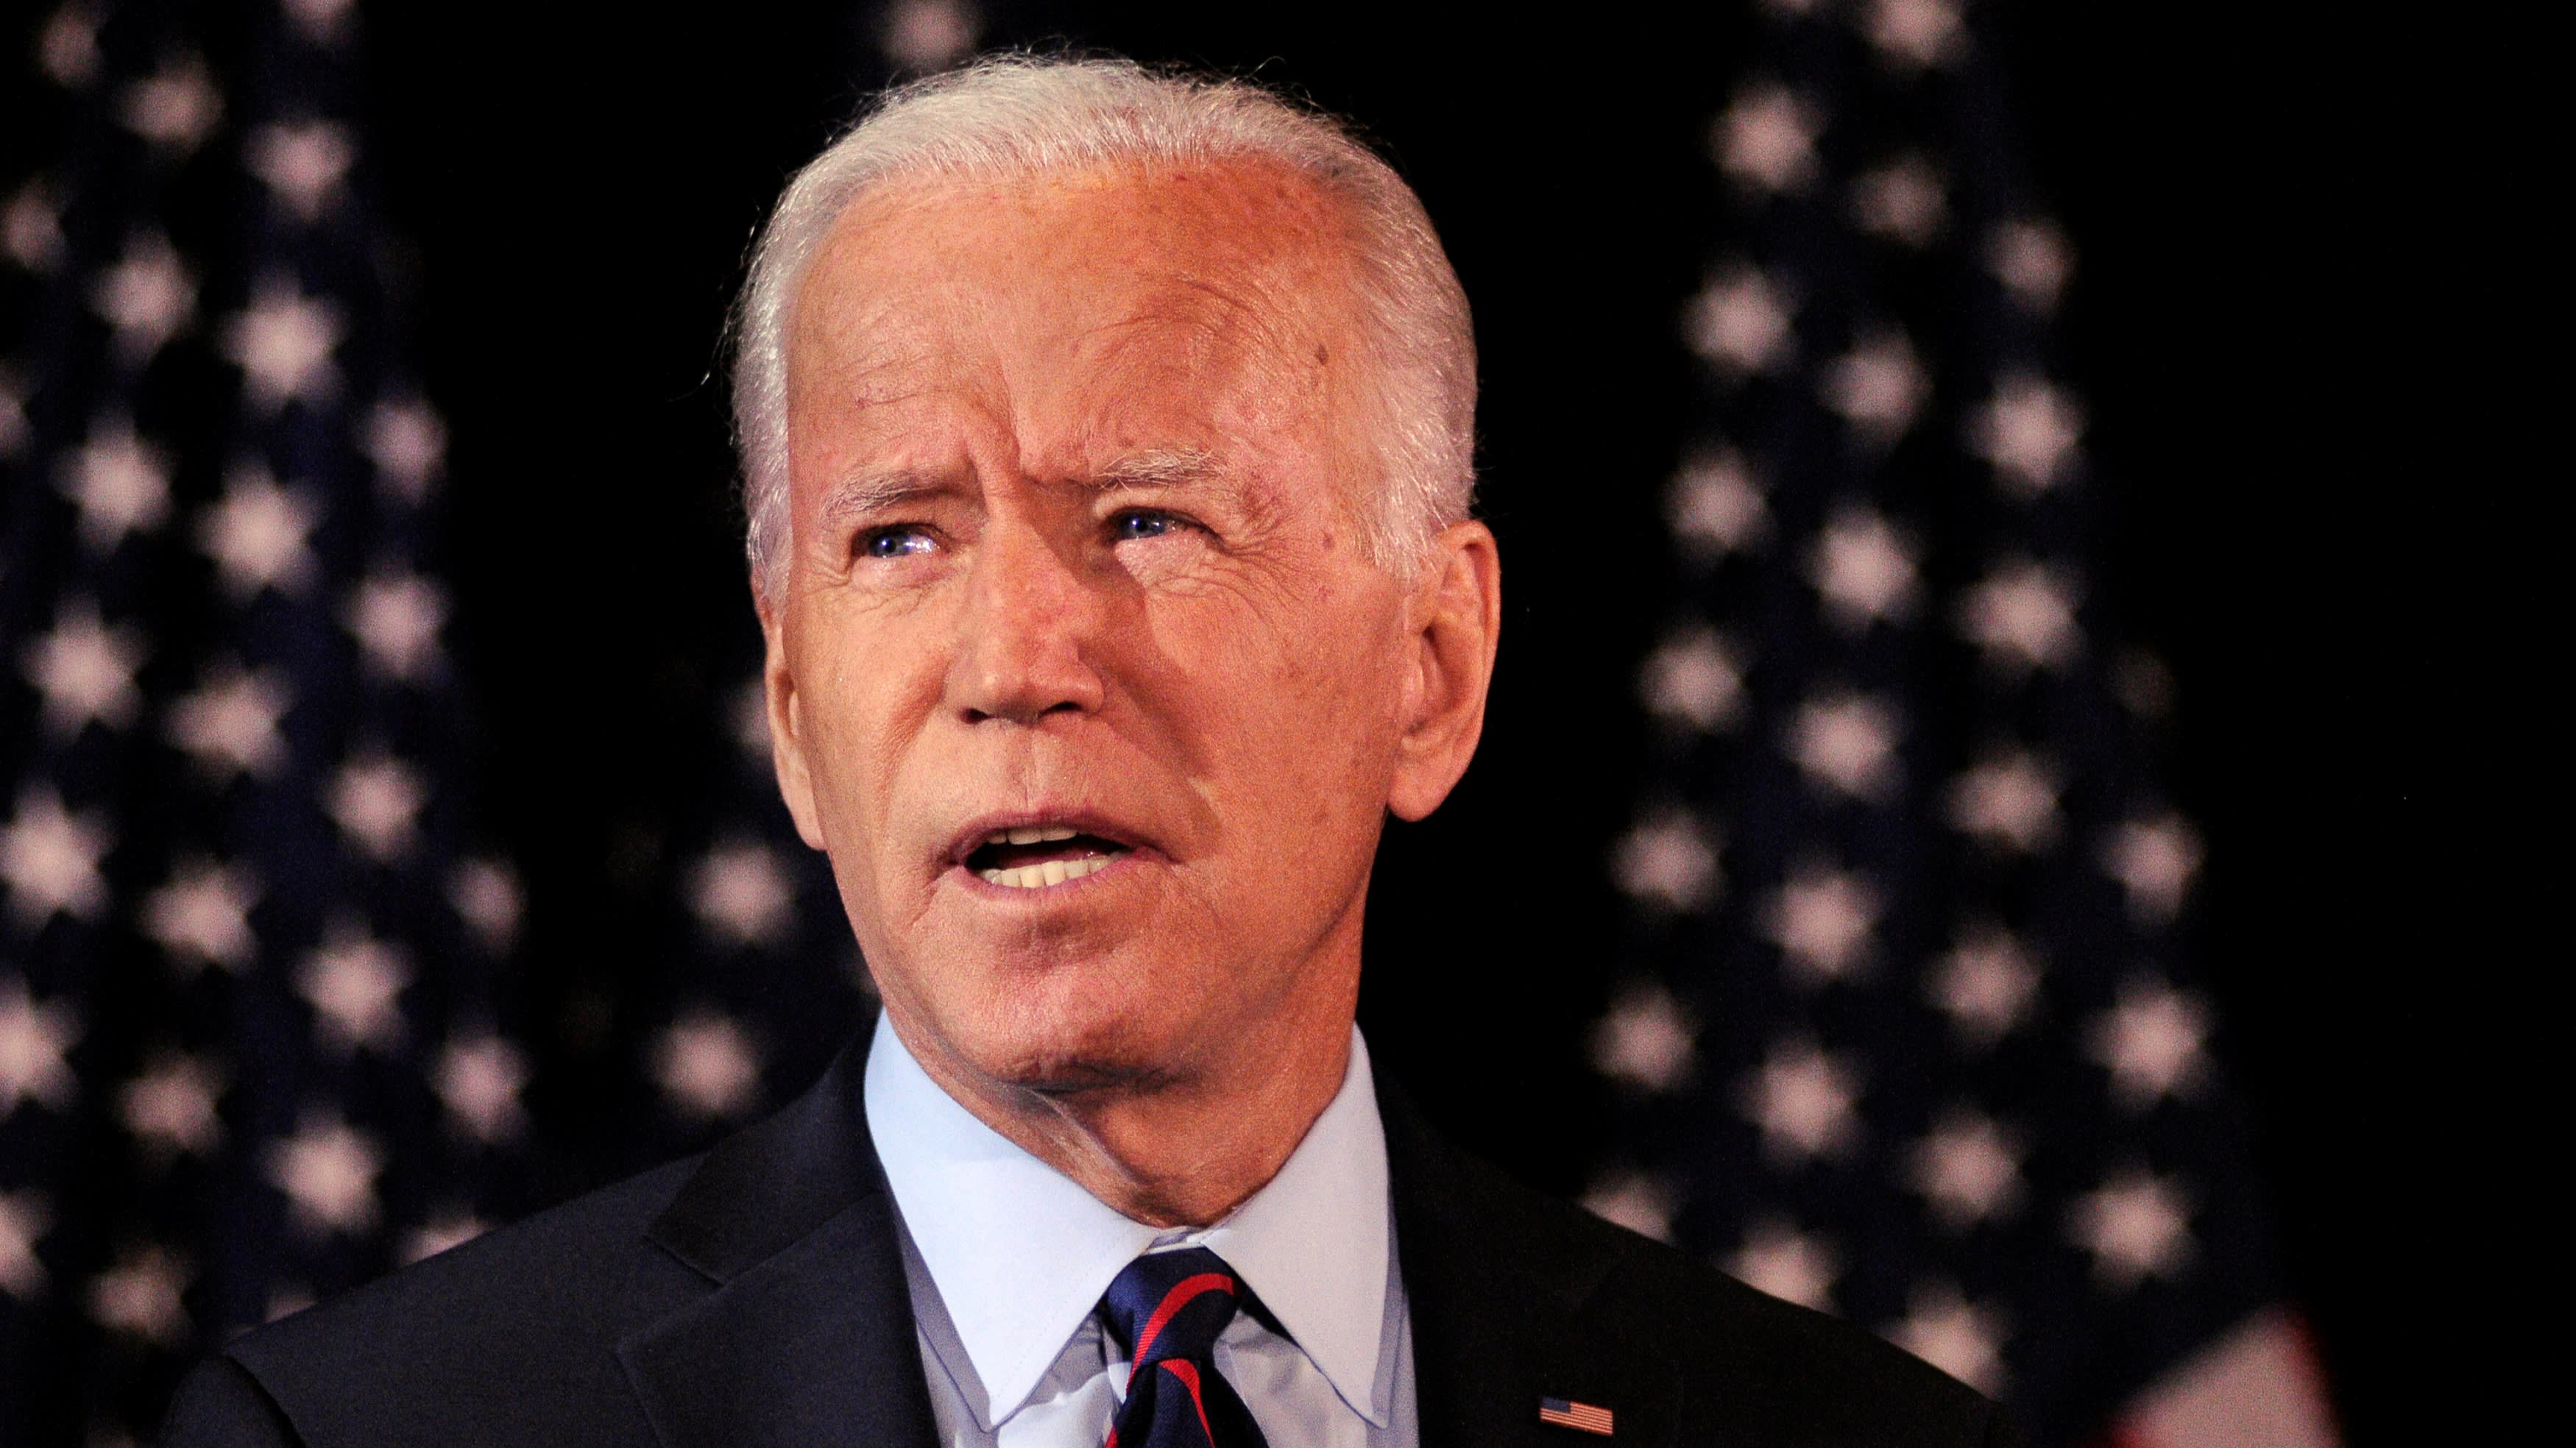 Biden, Gates other Twitter accounts hacked